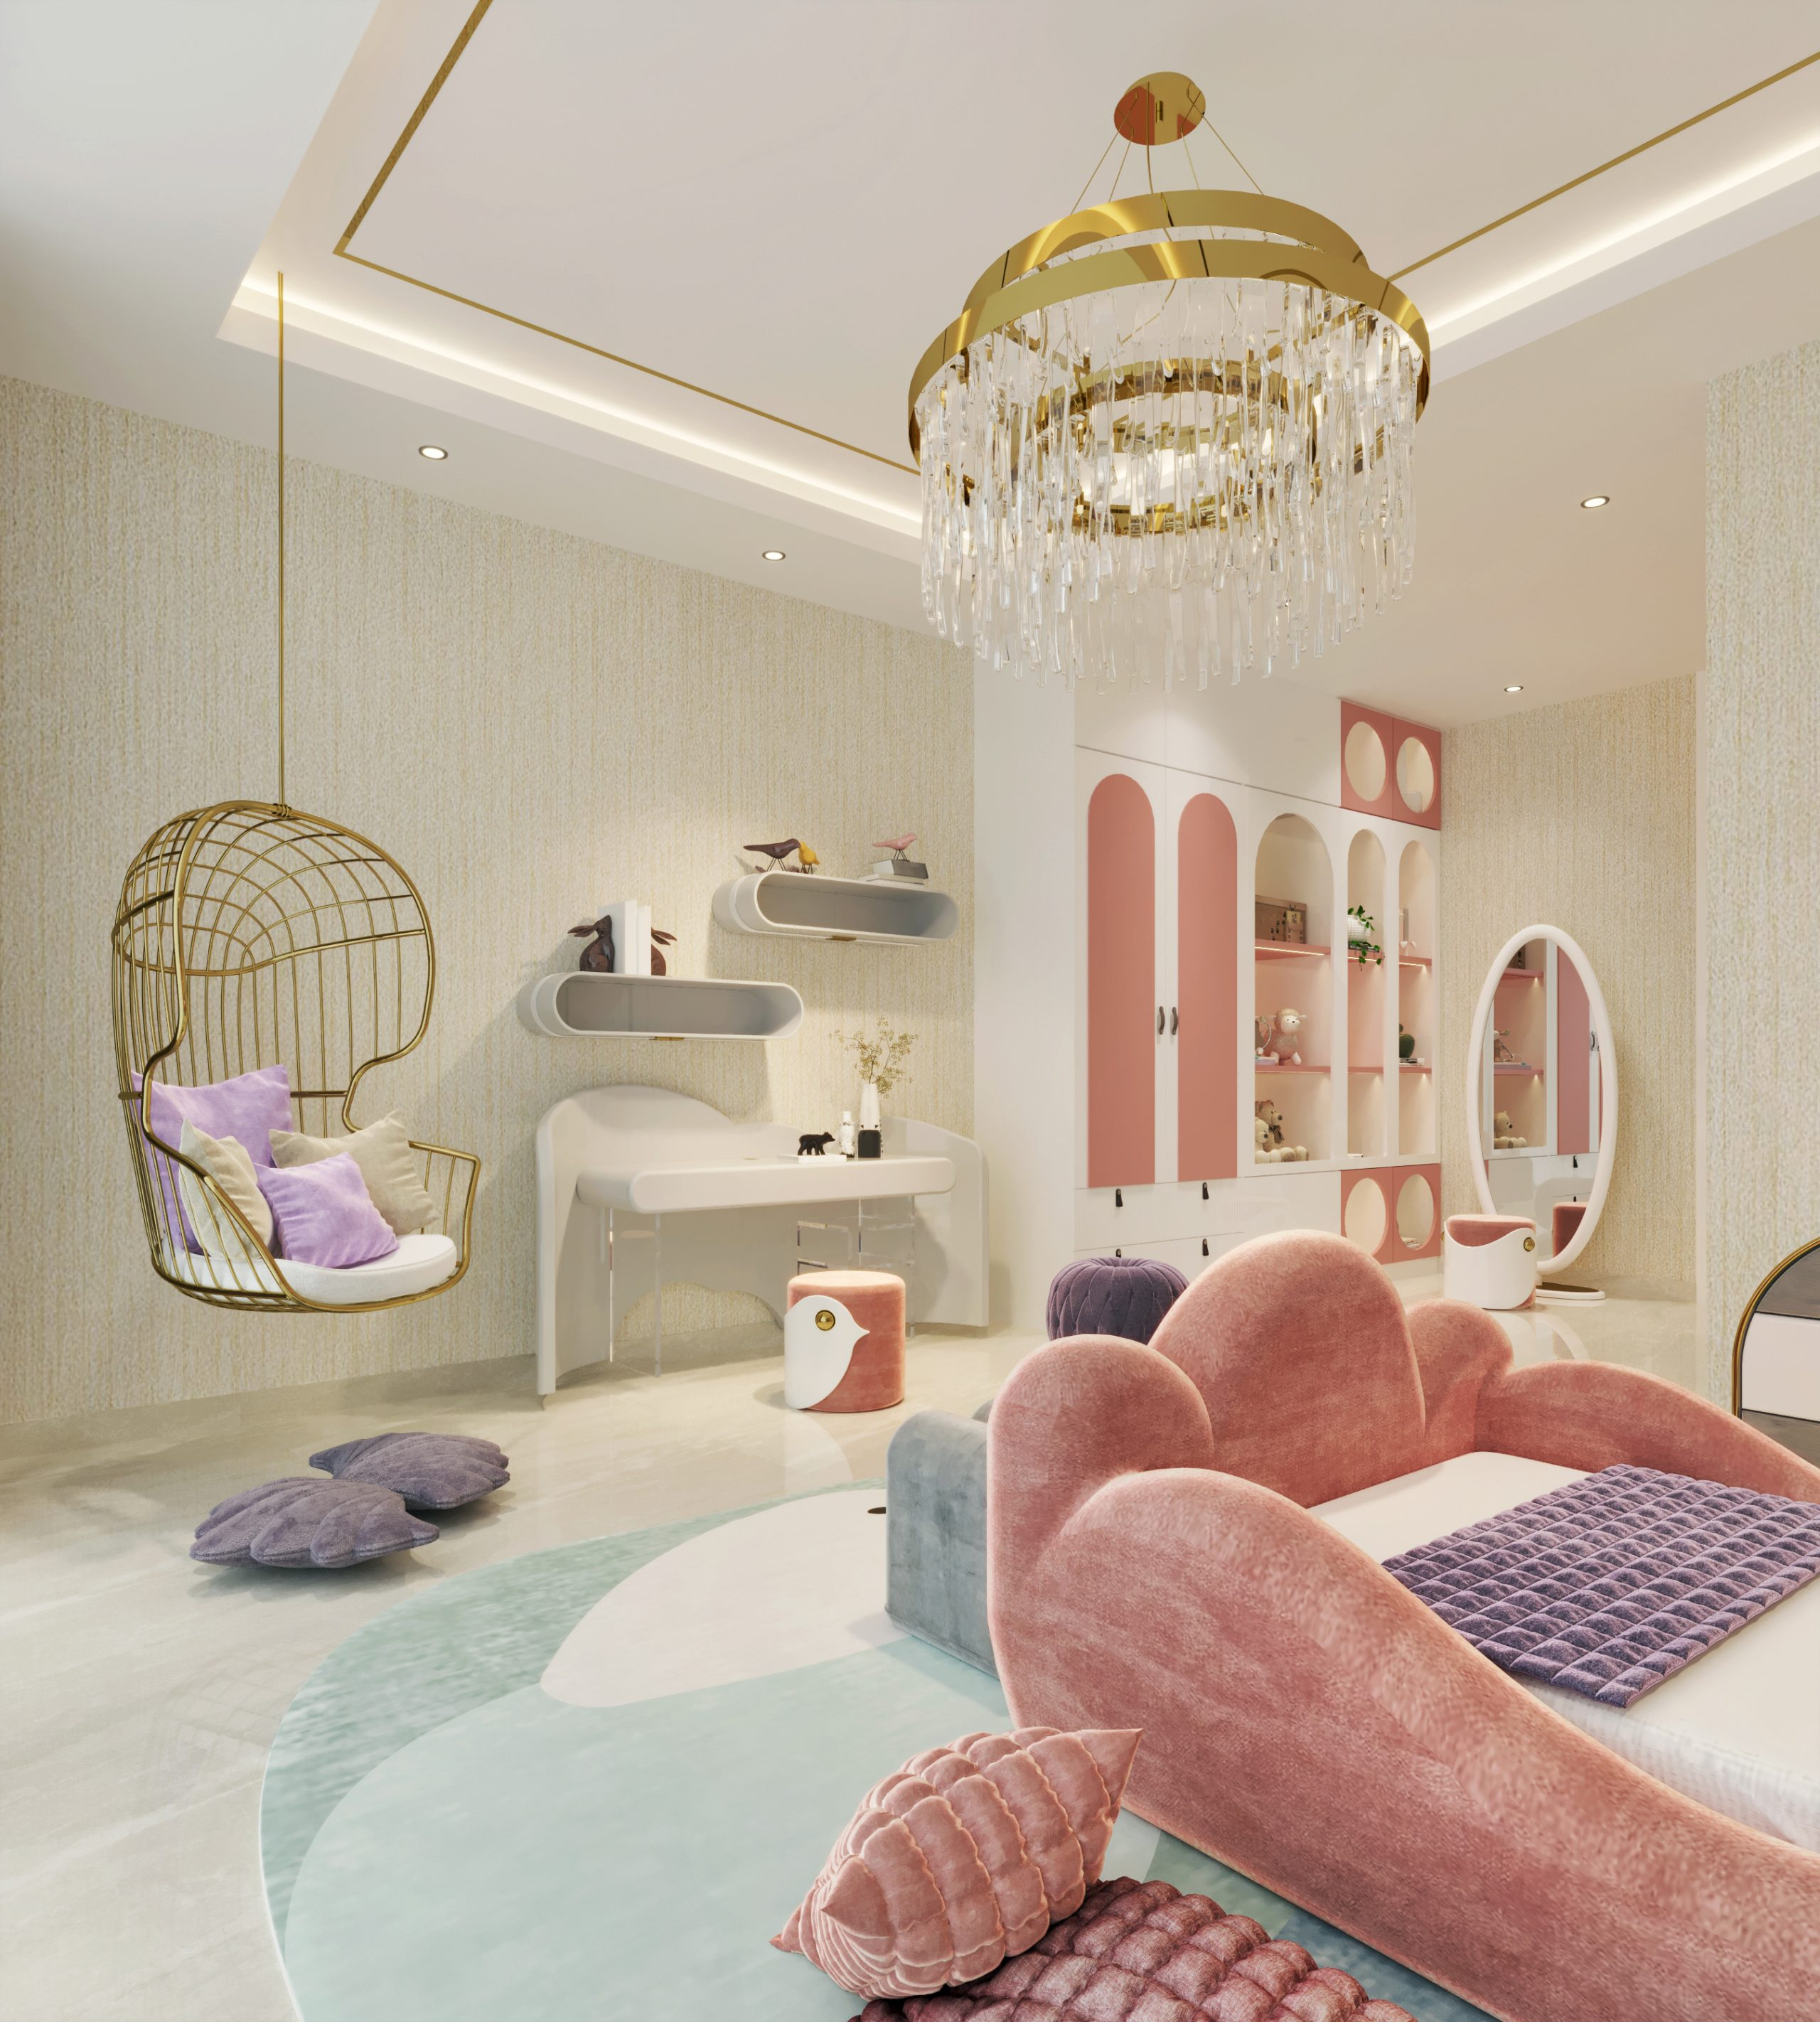 contemplate some exquisite inspirations for kids bedroom